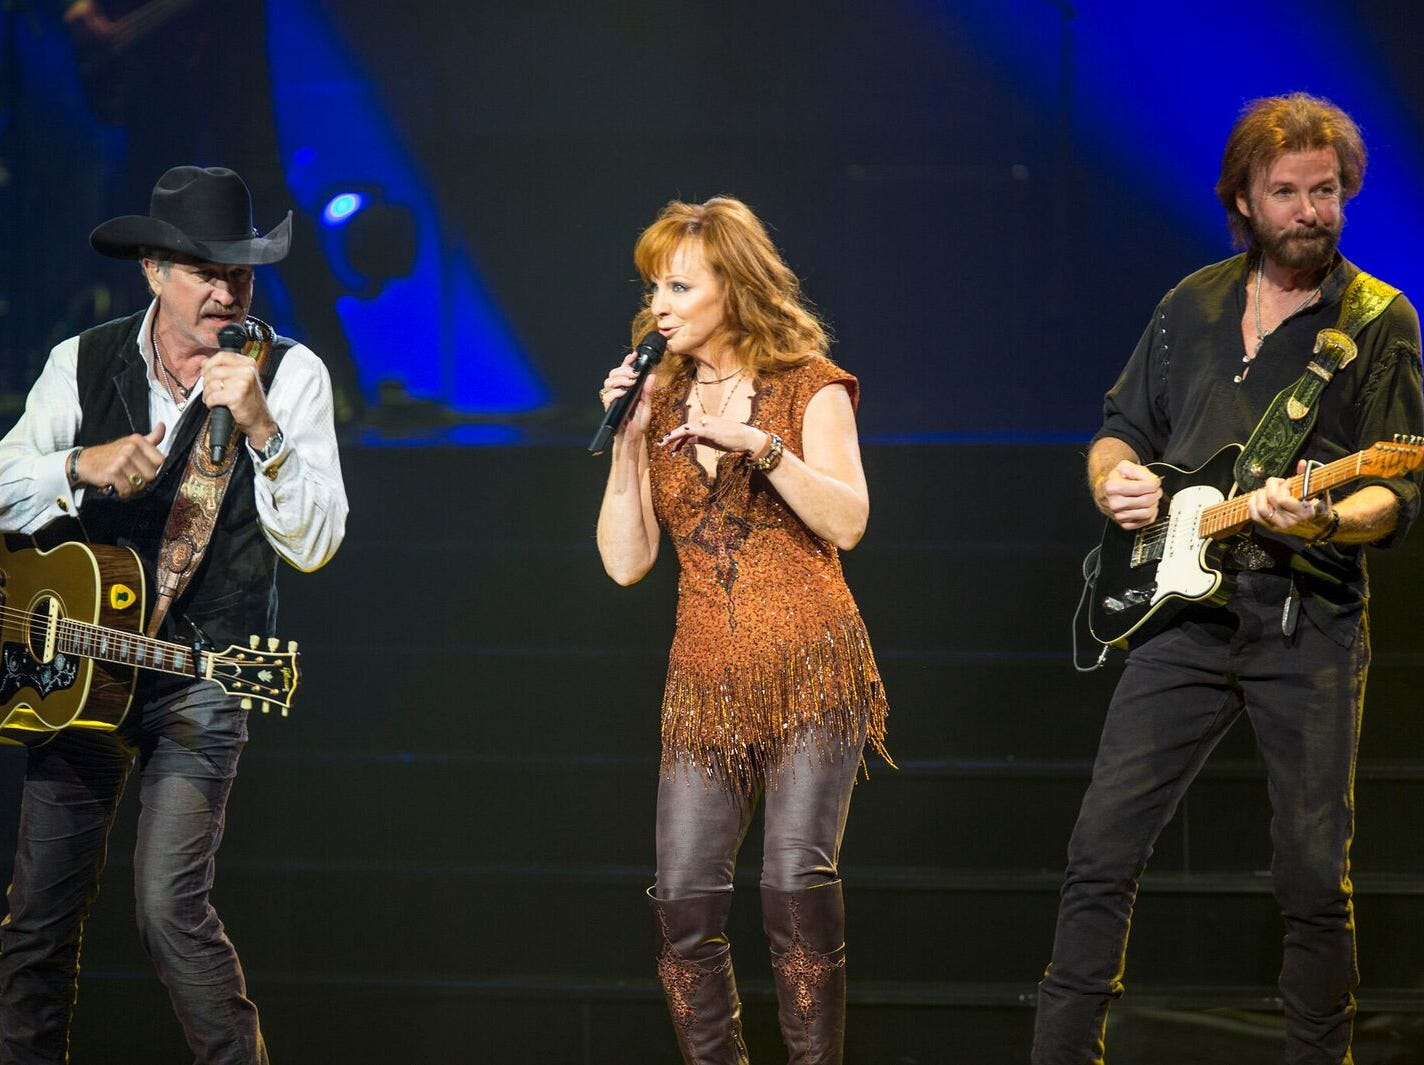 Country music stars Reba McEntire and Brooks & Dunn perform at The Colosseum at  Caesars Palace in Las Vegas. The shows continue through December 2018.